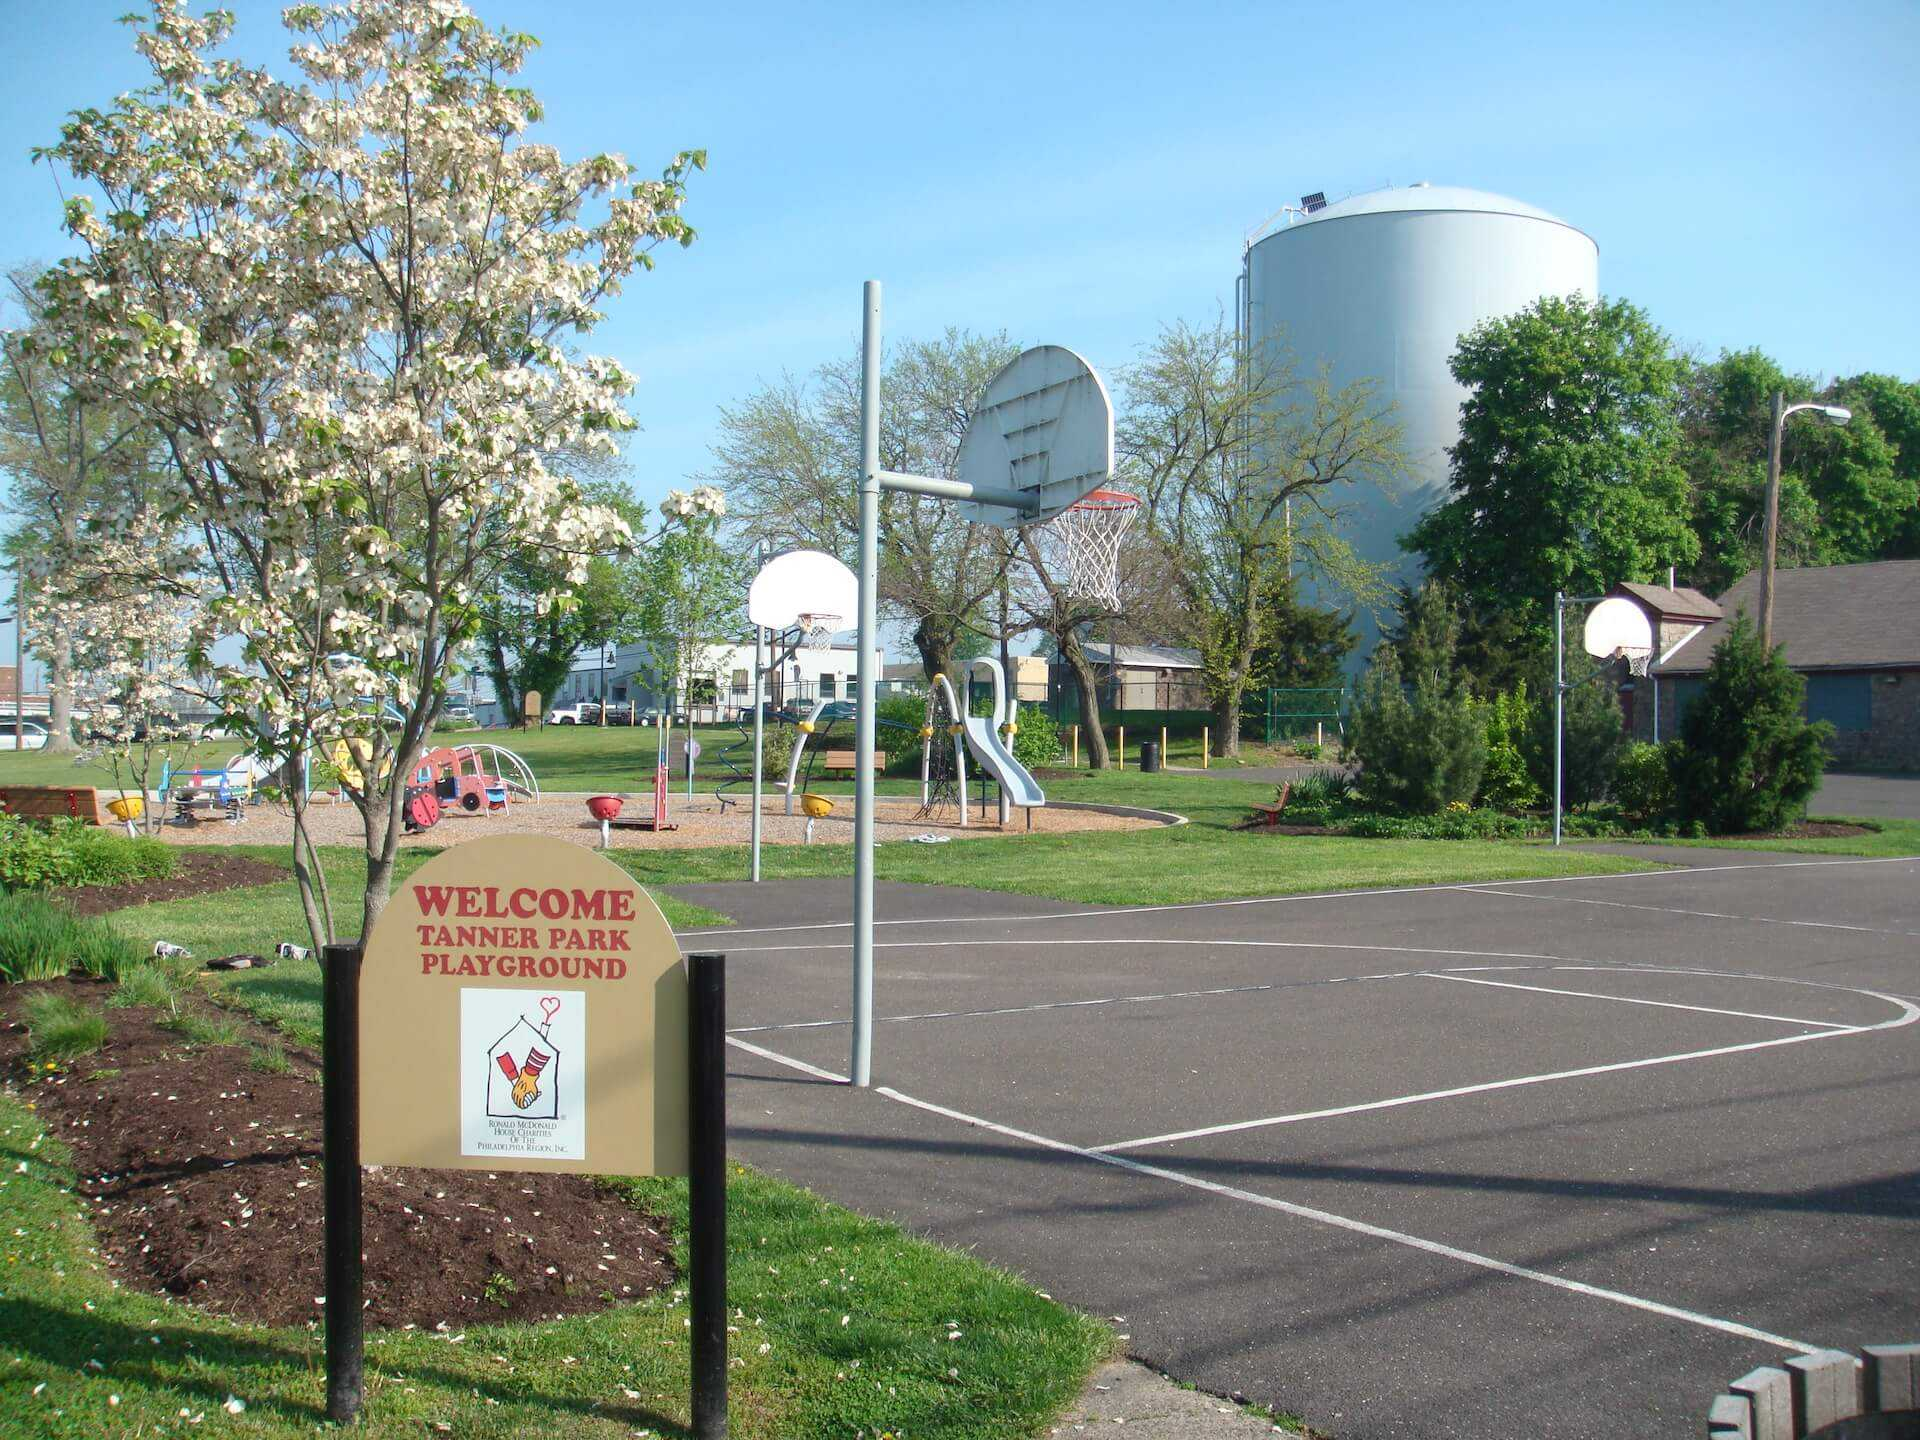 welcome tanner park sign with basketball court and playground